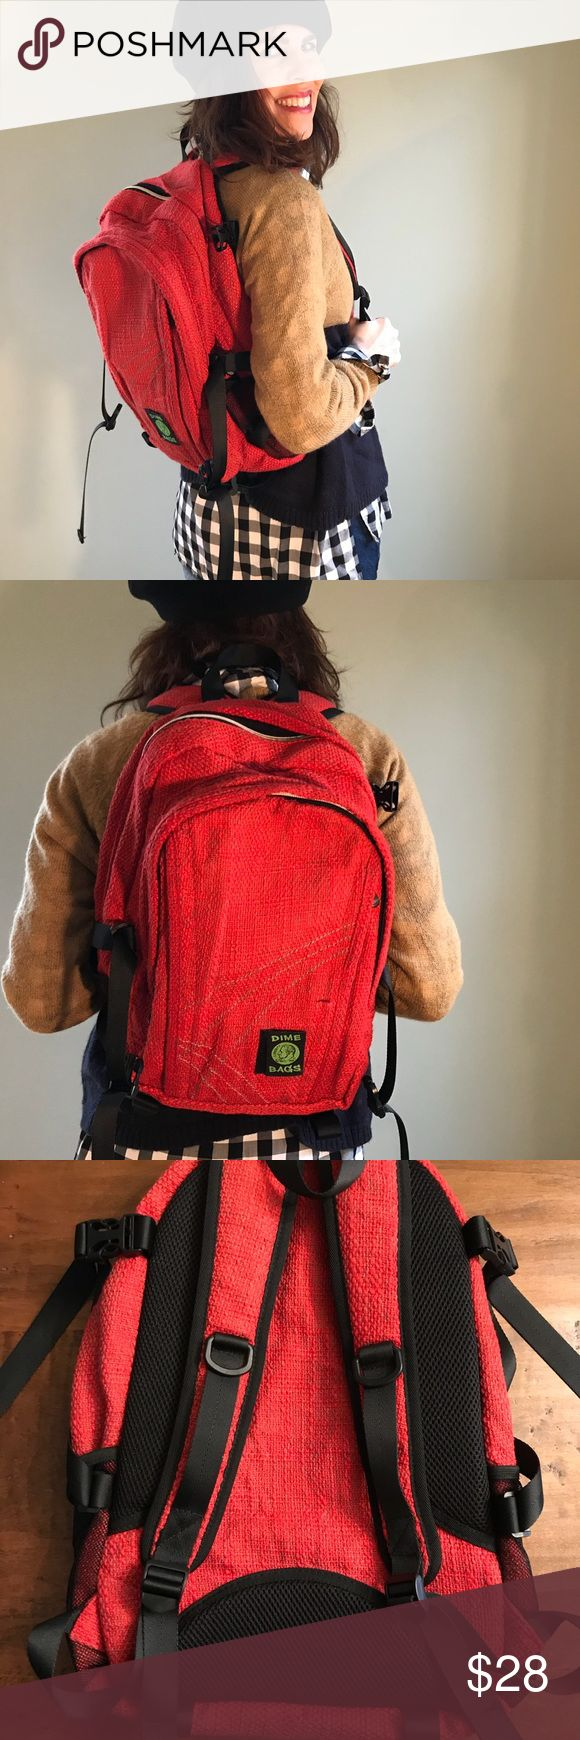 Dime Bag Backpack Hemp and cotton backpack, perfect for school or toting anything! This backpack looks like it's never been used. Dime Bag Bags Backpacks